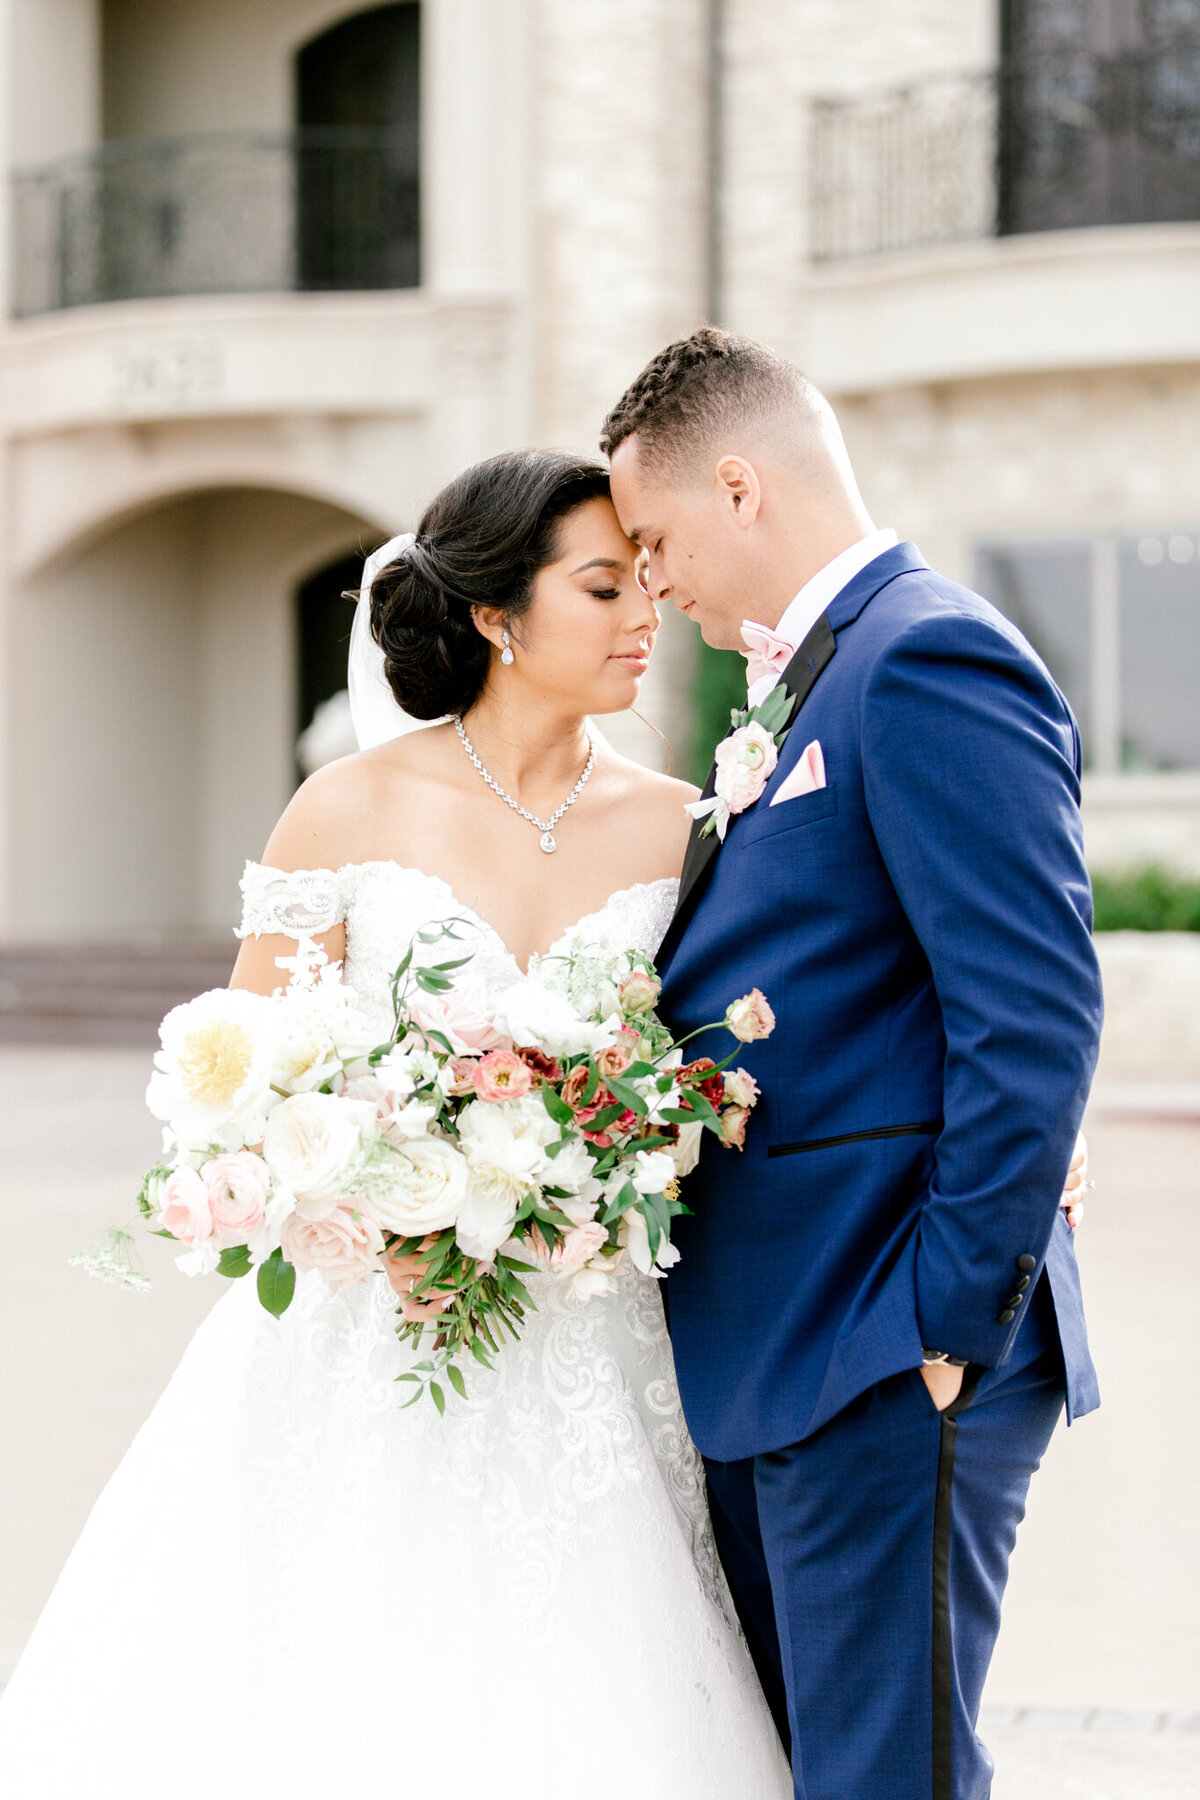 Jasmine & Josh Wedding at Knotting Hill Place | Dallas DFW Wedding Photographer | Sami Kathryn Photography-91